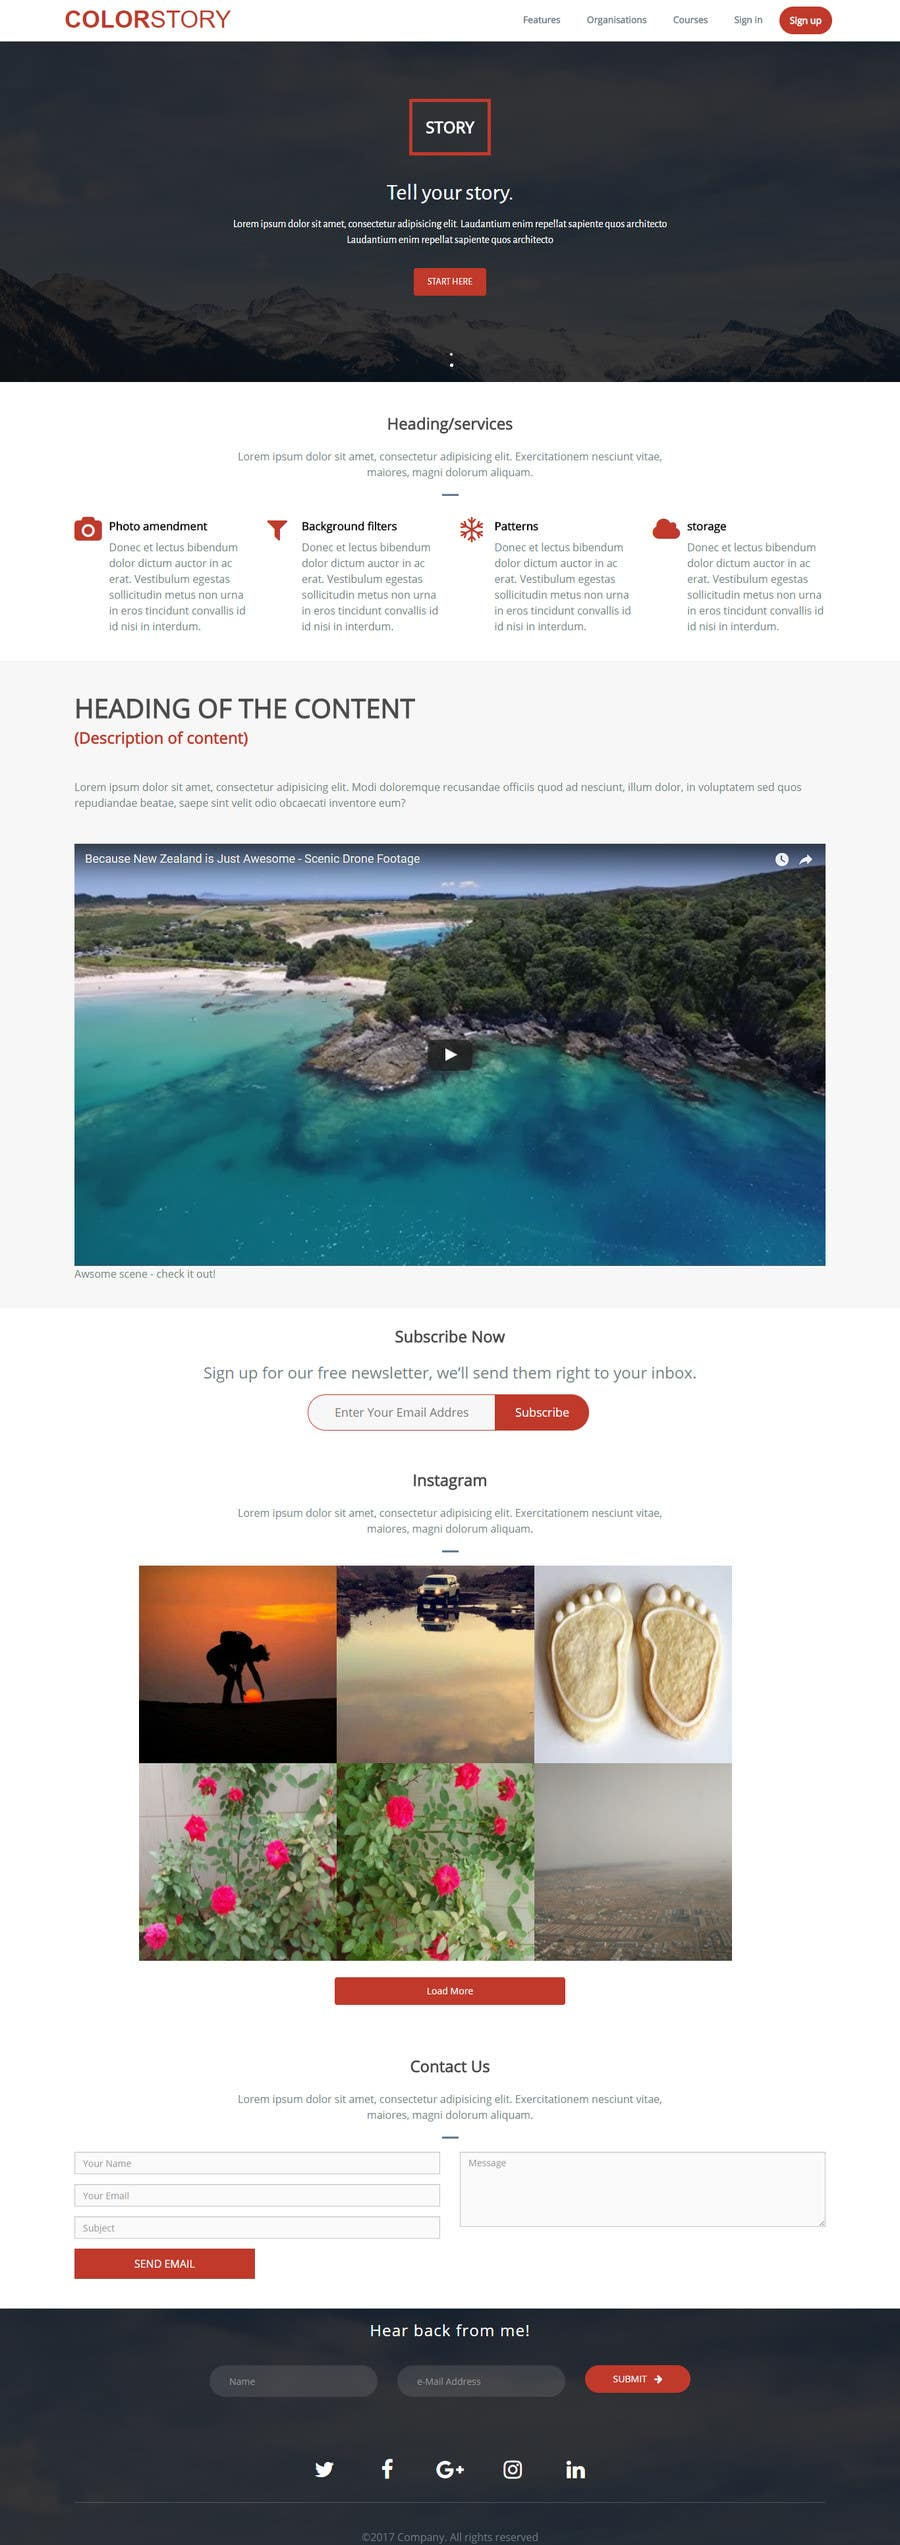 Proposition n°6 du concours 1 page - landing page in html / CSS for a mobile app w/ Instagram feed